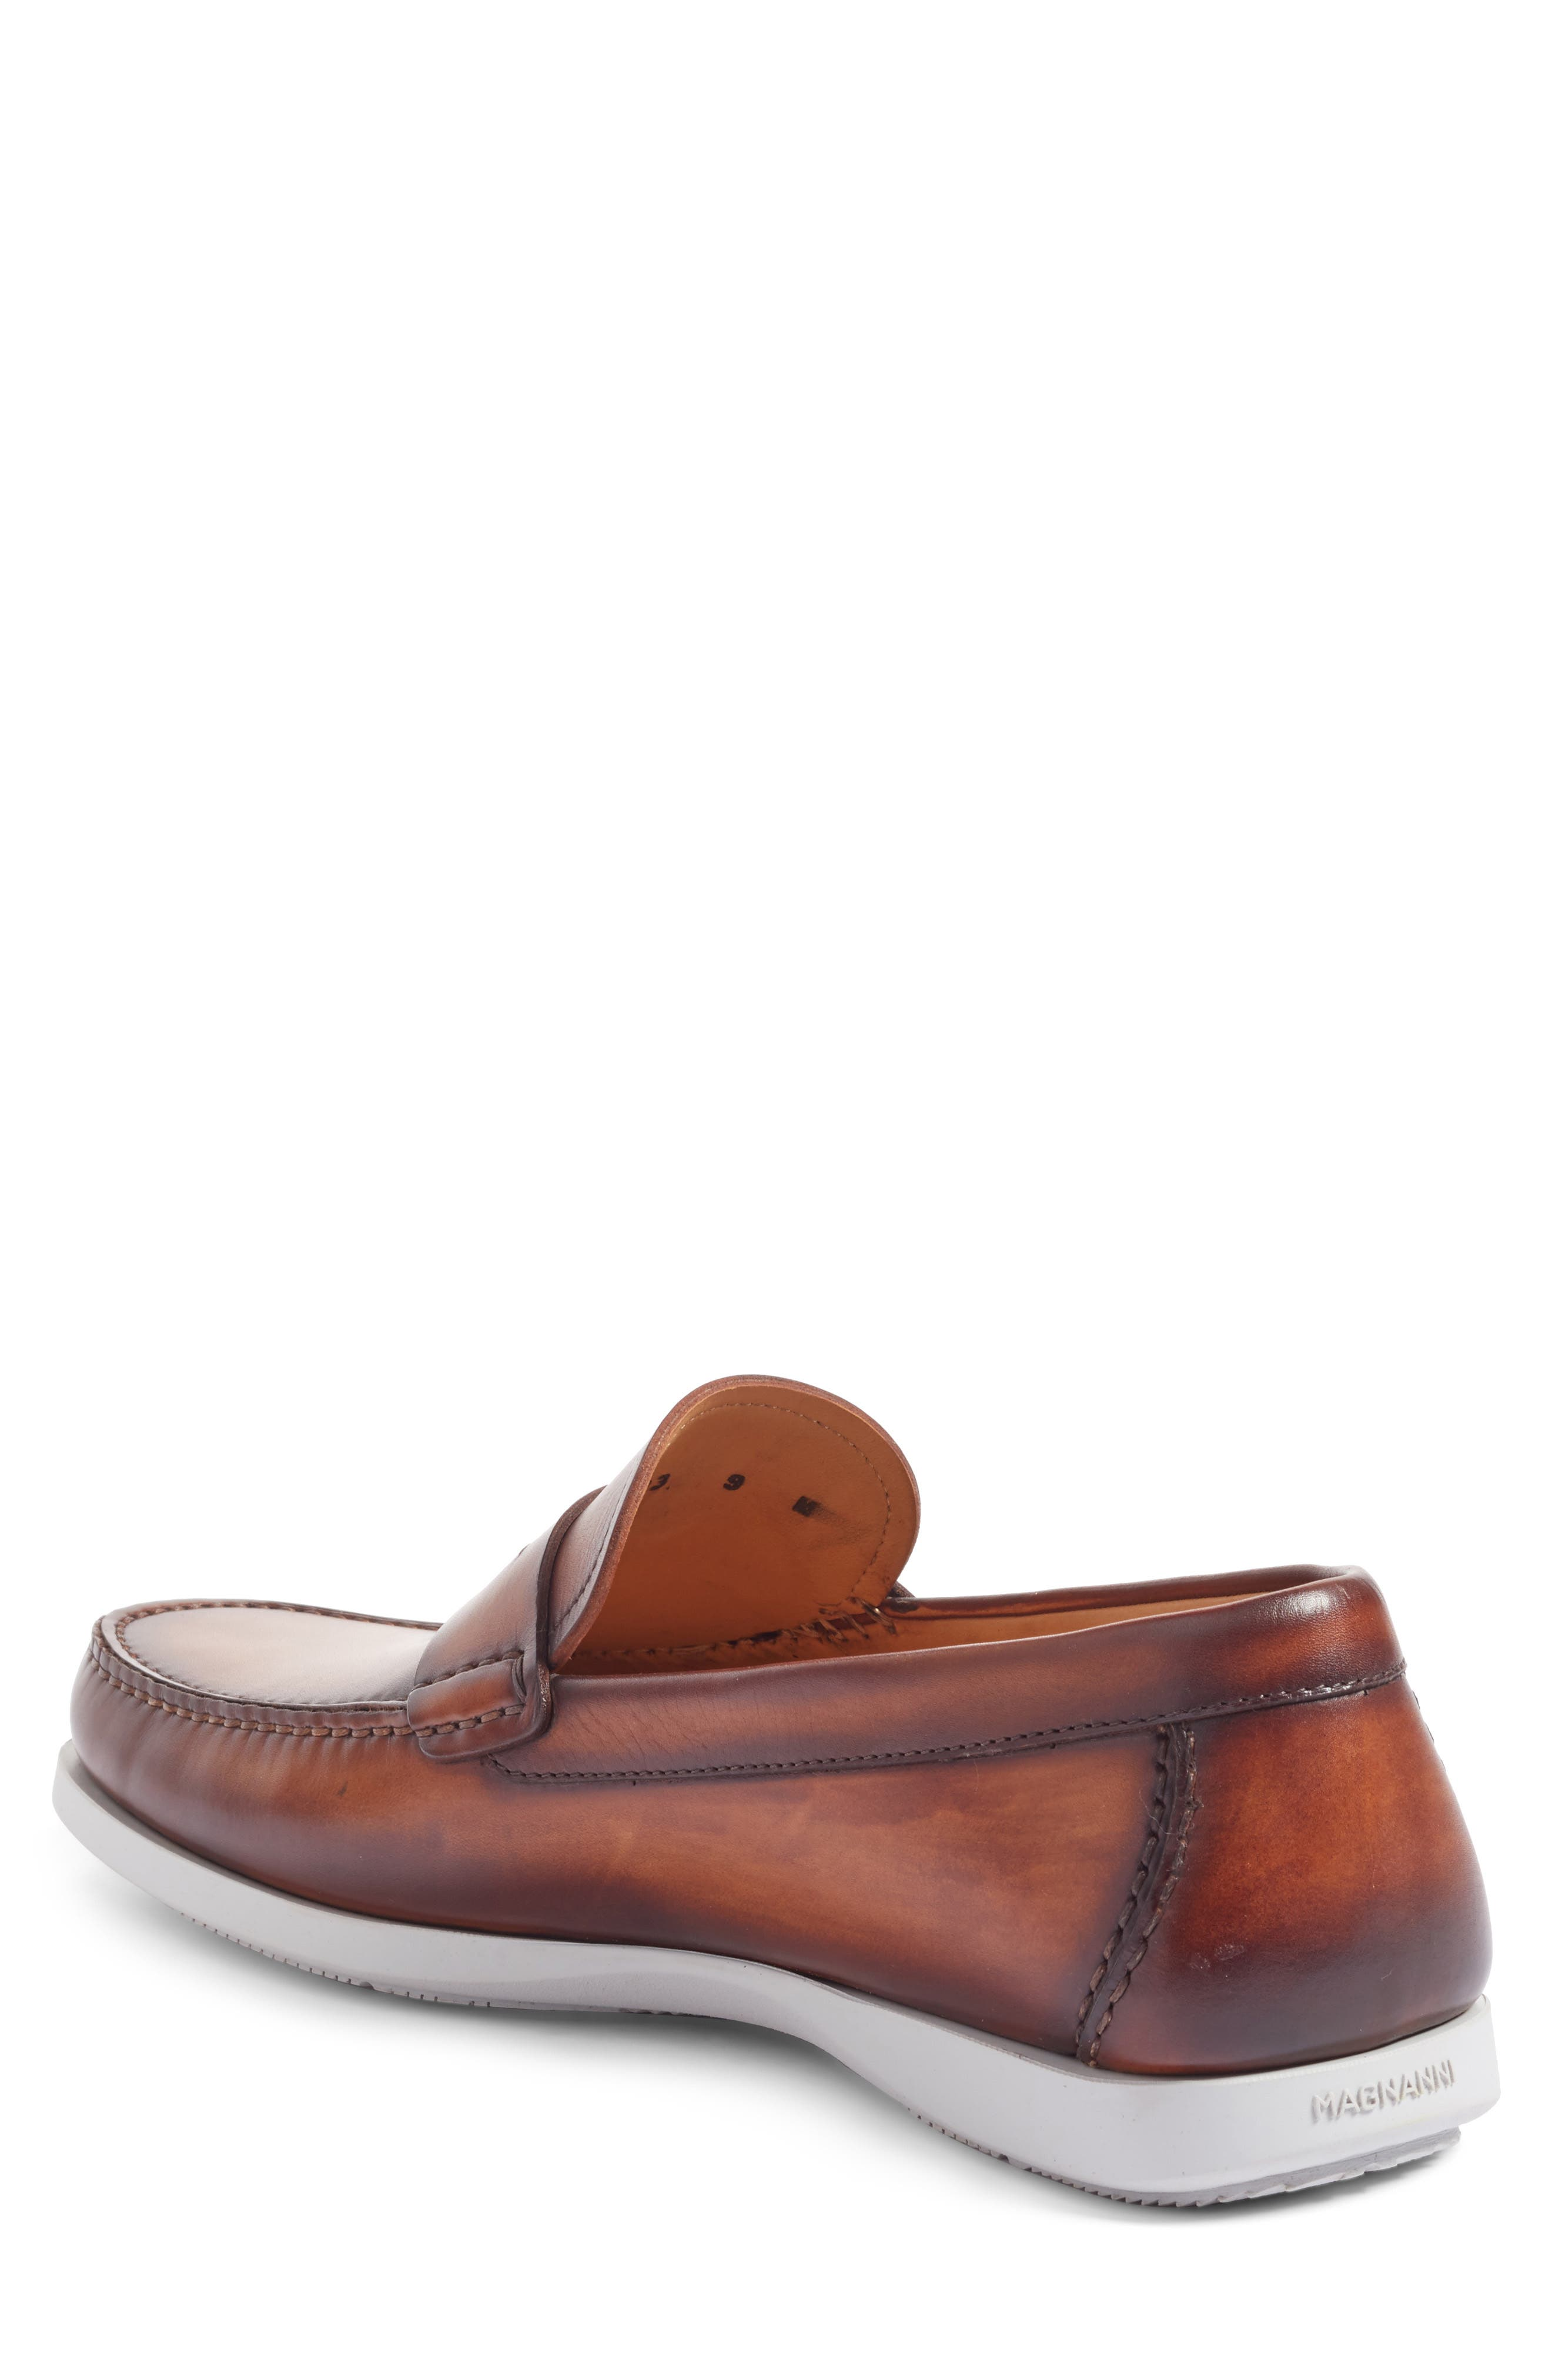 Laguna Penny Loafer,                             Alternate thumbnail 2, color,                             MID-BROWN LEATHER